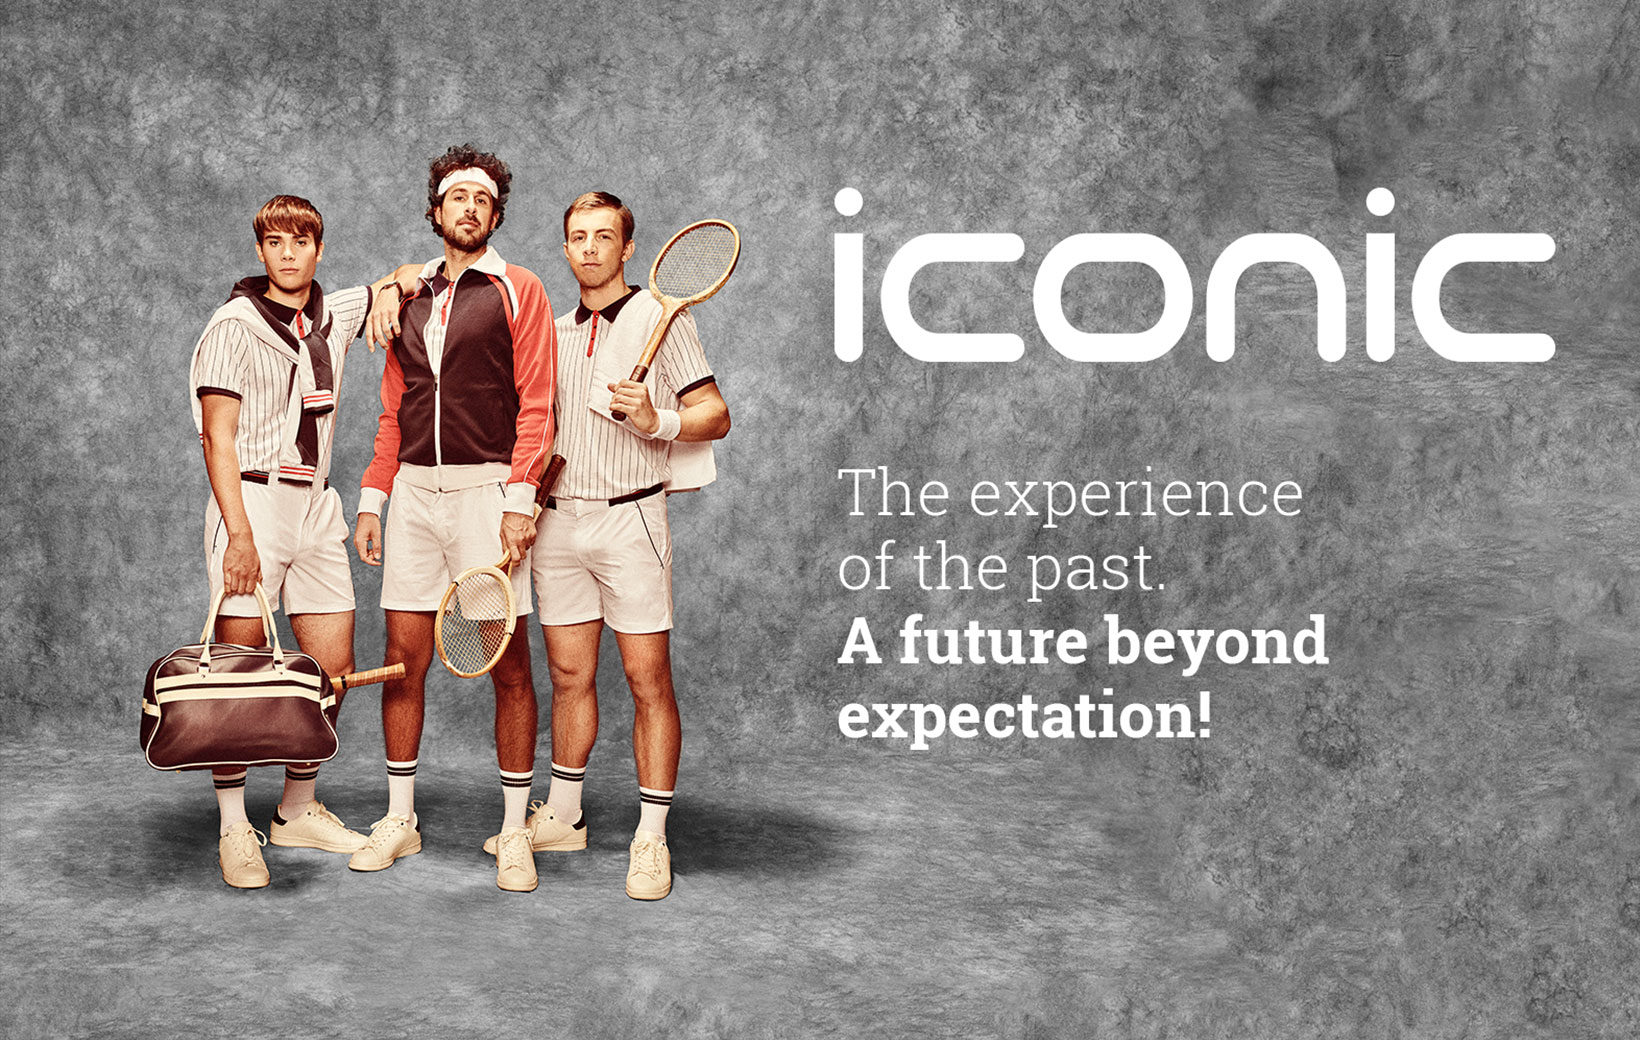 Mline Iconic - the experience of the past. A future beyond expectation!